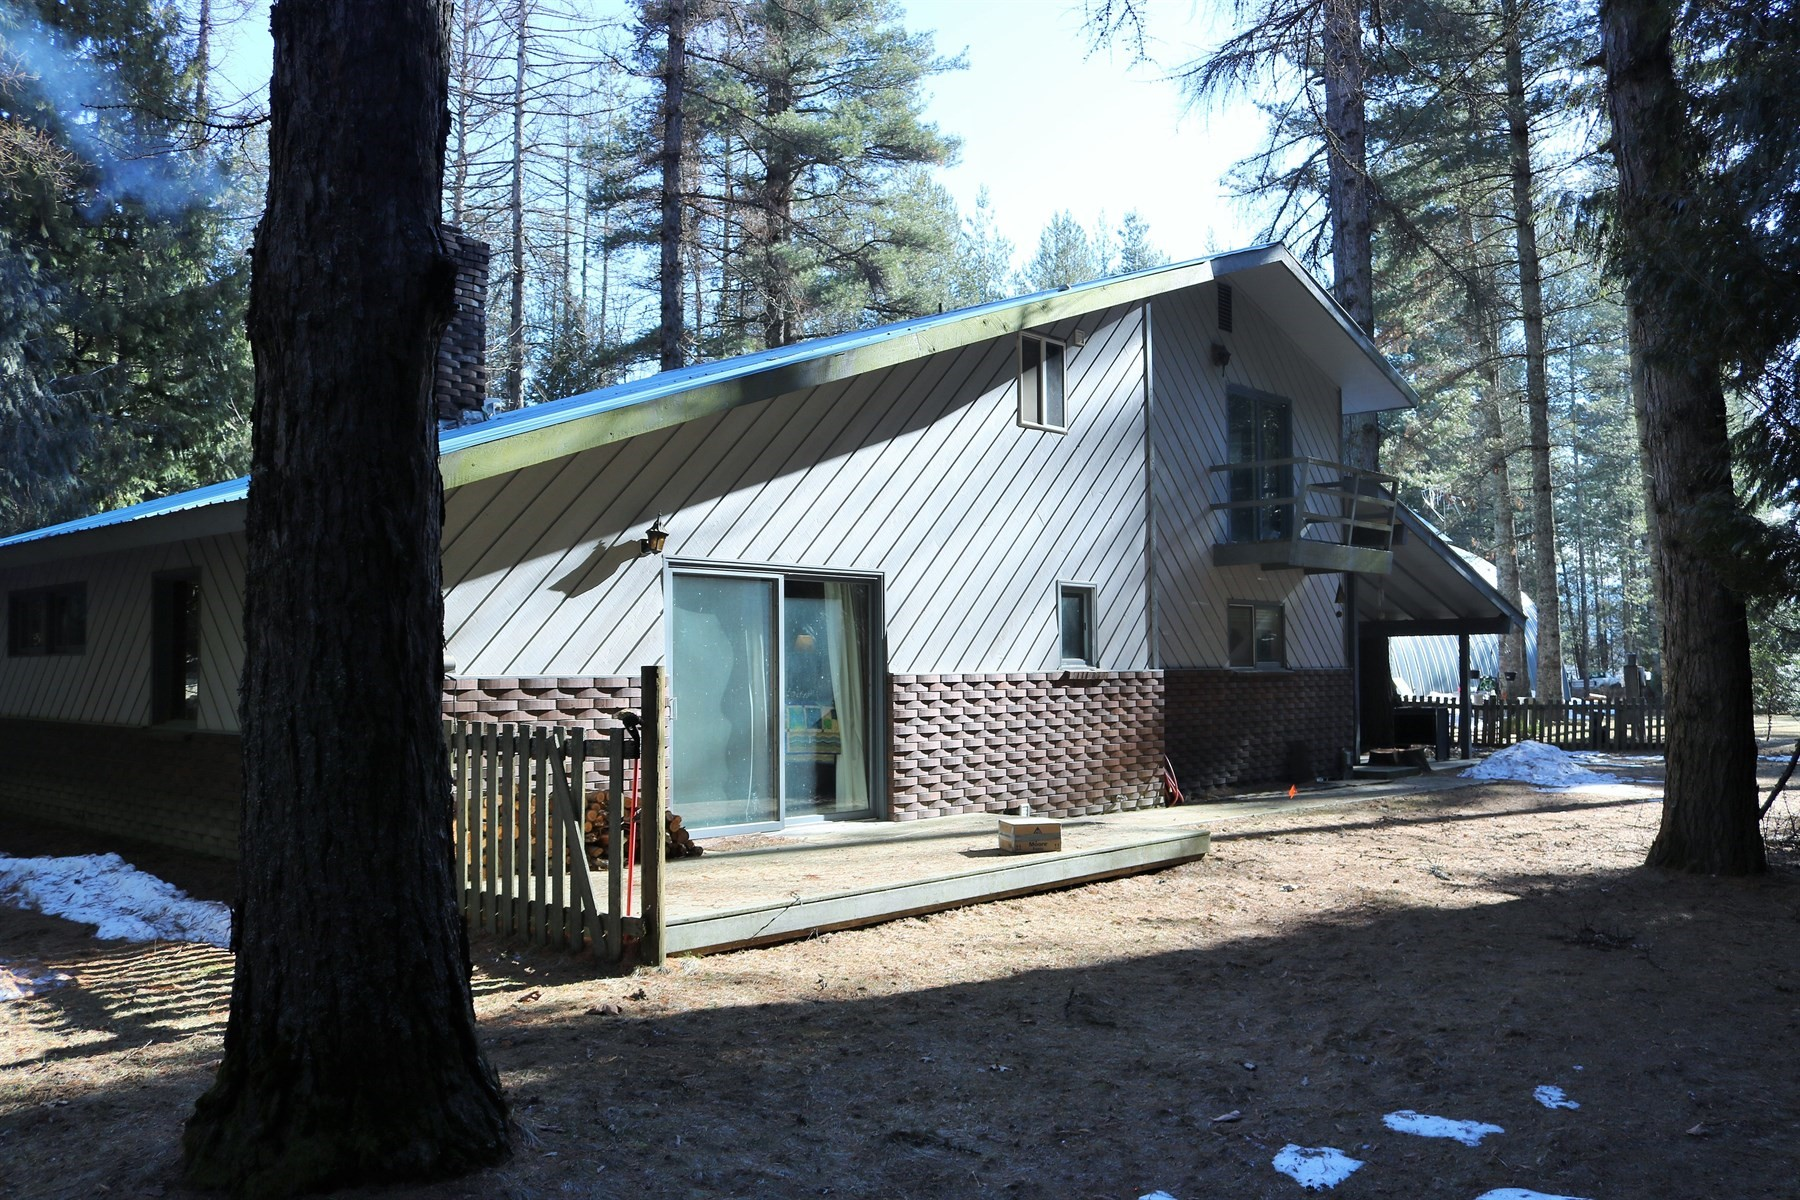 Additional photo for property listing at THE PRIME development property 405 Schweitzer Cutoff Rd Sandpoint, Idaho 83864 United States